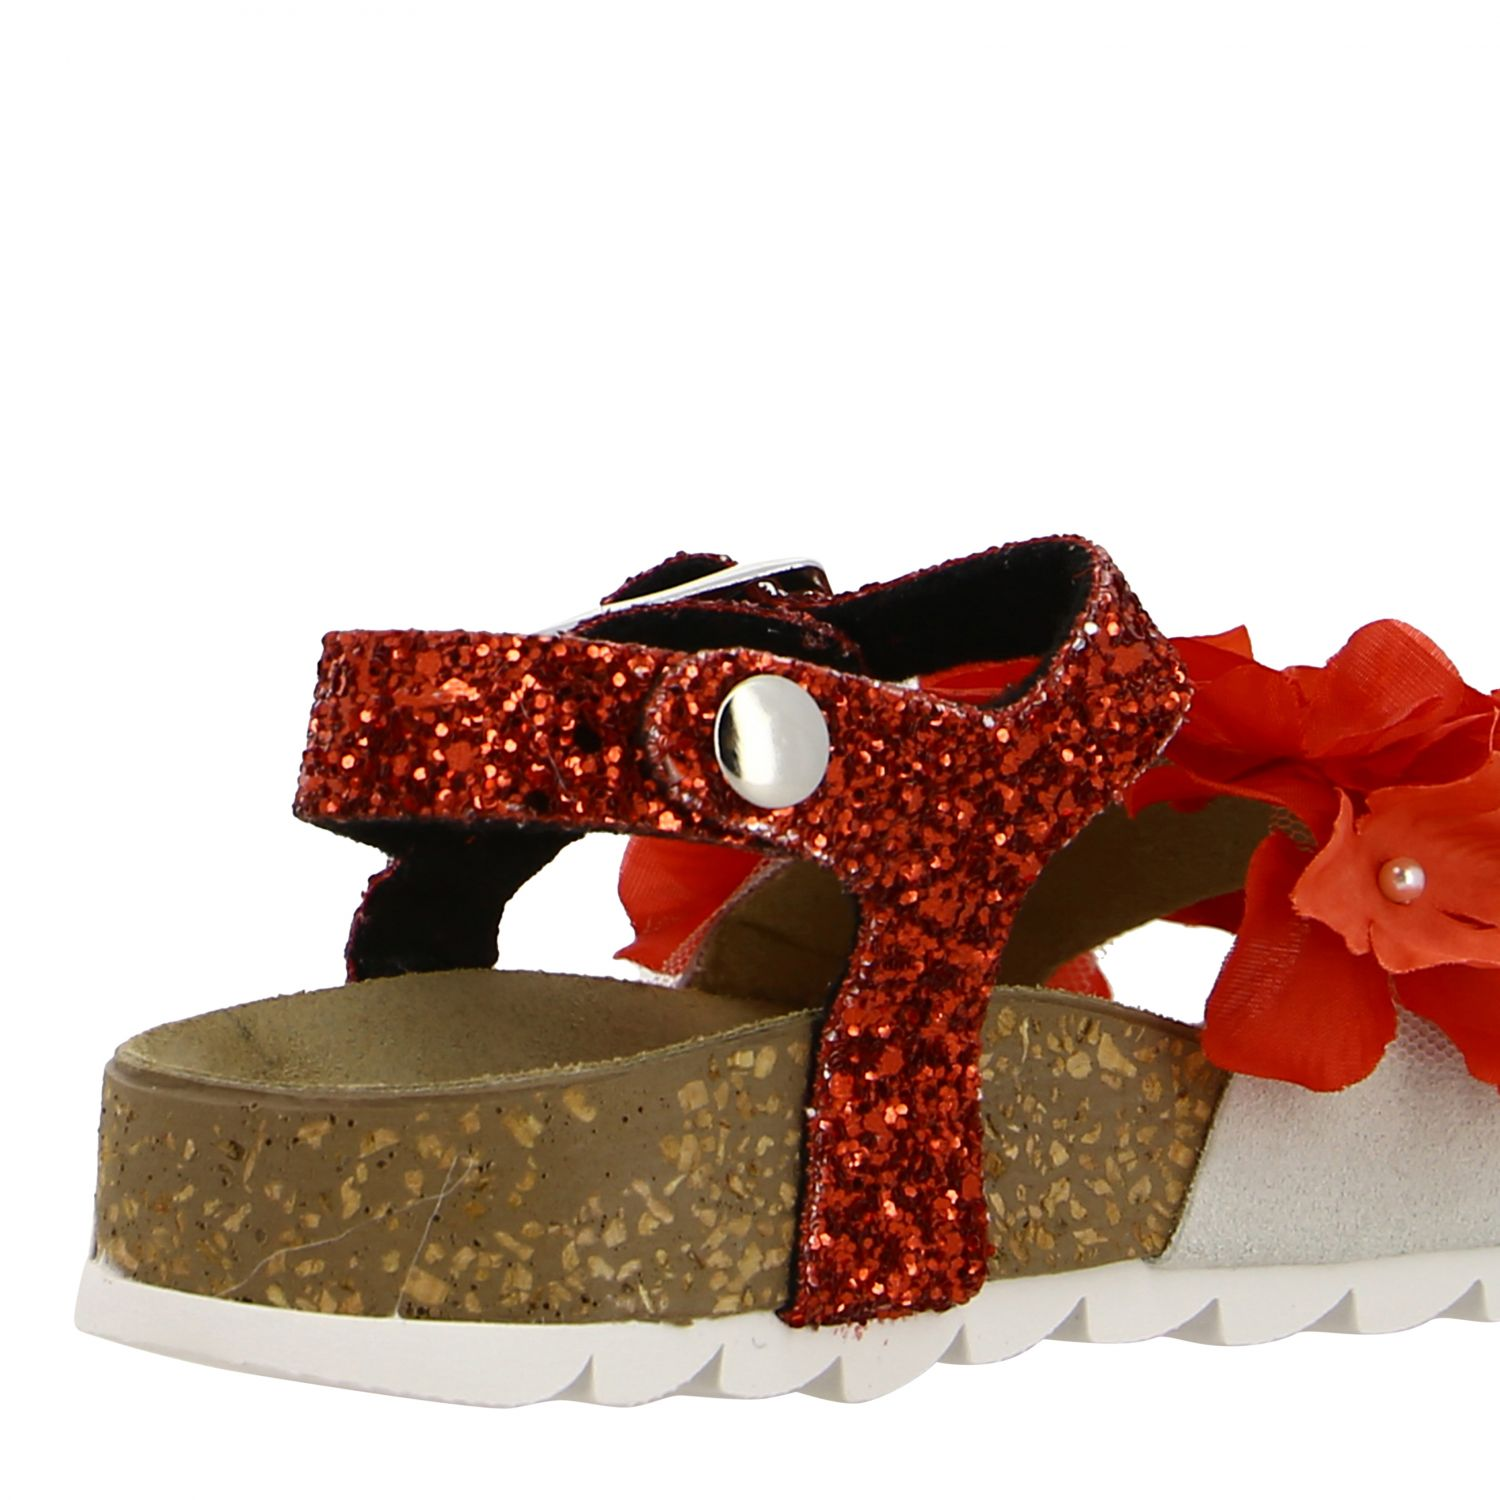 Monnalisa glitter sandal with floral applications red 5